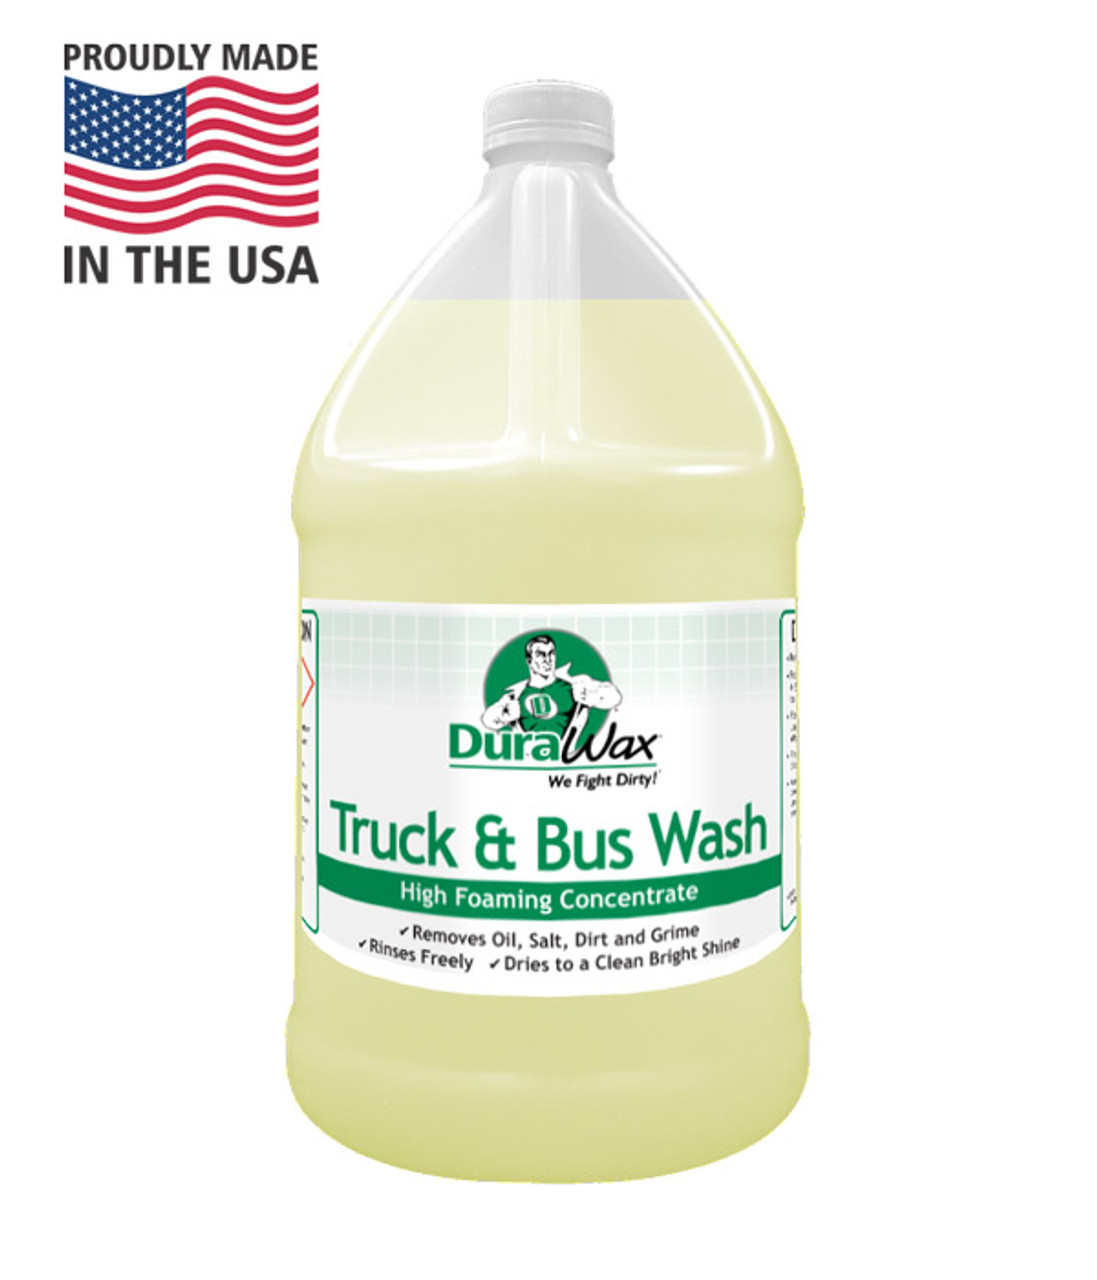 Truck and Bus Wash is formulated to cut through the dirt and grime that accumulate on vehicles that are on the road a lot, such as fleet buses and trucks.